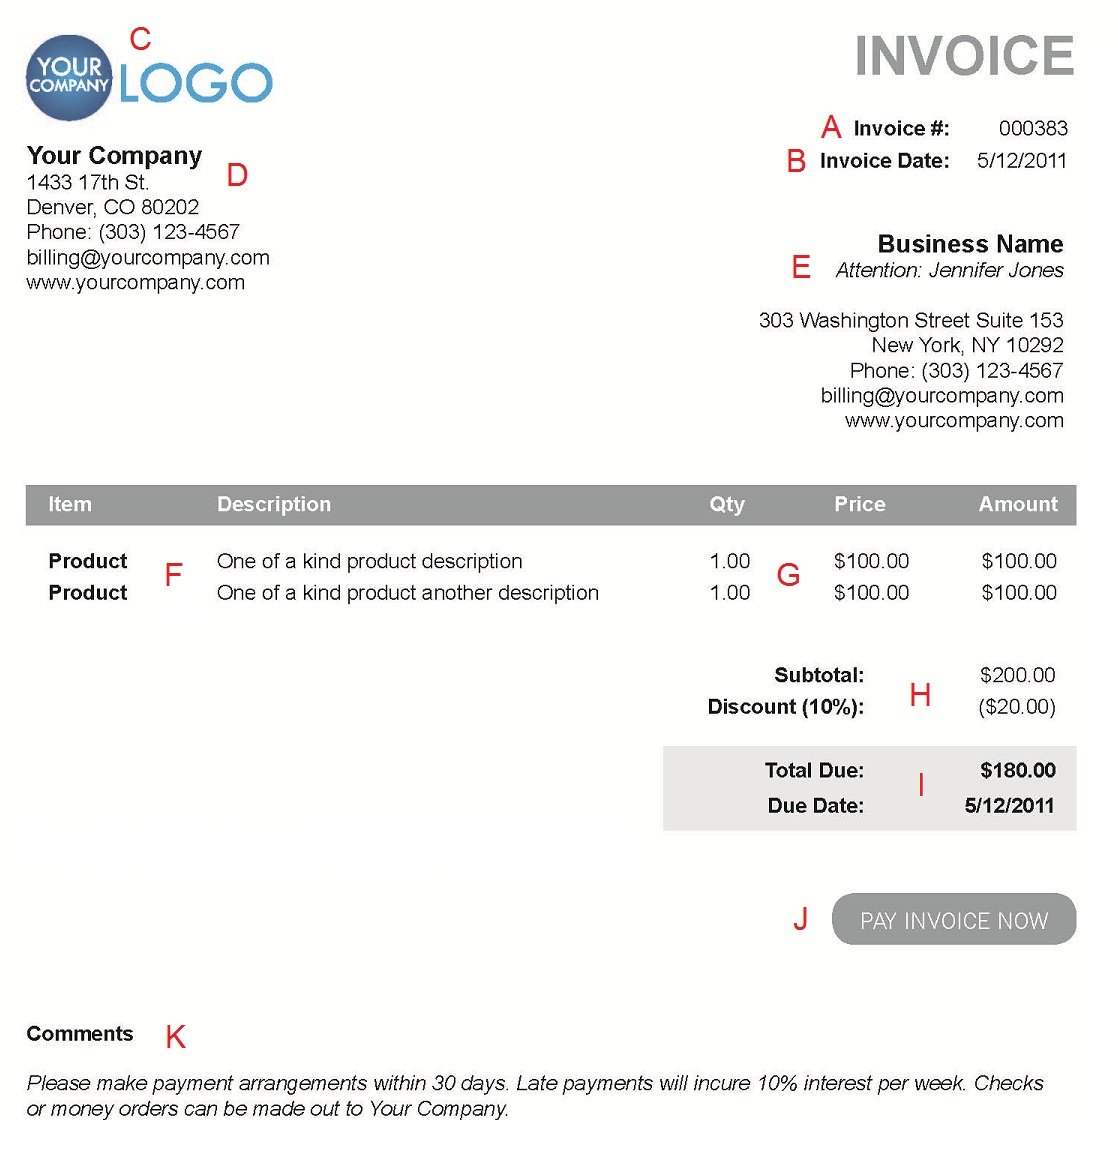 Coolmathgamesus  Fascinating The  Different Sections Of An Electronic Payment Invoice With Goodlooking A  With Charming Sample Of An Invoice Also Payment Is Due Upon Receipt Of Invoice In Addition Invoice Template For Mac And How To Invoice With Paypal As Well As Car Dealer Invoice Additionally Quickbooks Sample Invoice From Paysimplecom With Coolmathgamesus  Goodlooking The  Different Sections Of An Electronic Payment Invoice With Charming A  And Fascinating Sample Of An Invoice Also Payment Is Due Upon Receipt Of Invoice In Addition Invoice Template For Mac From Paysimplecom